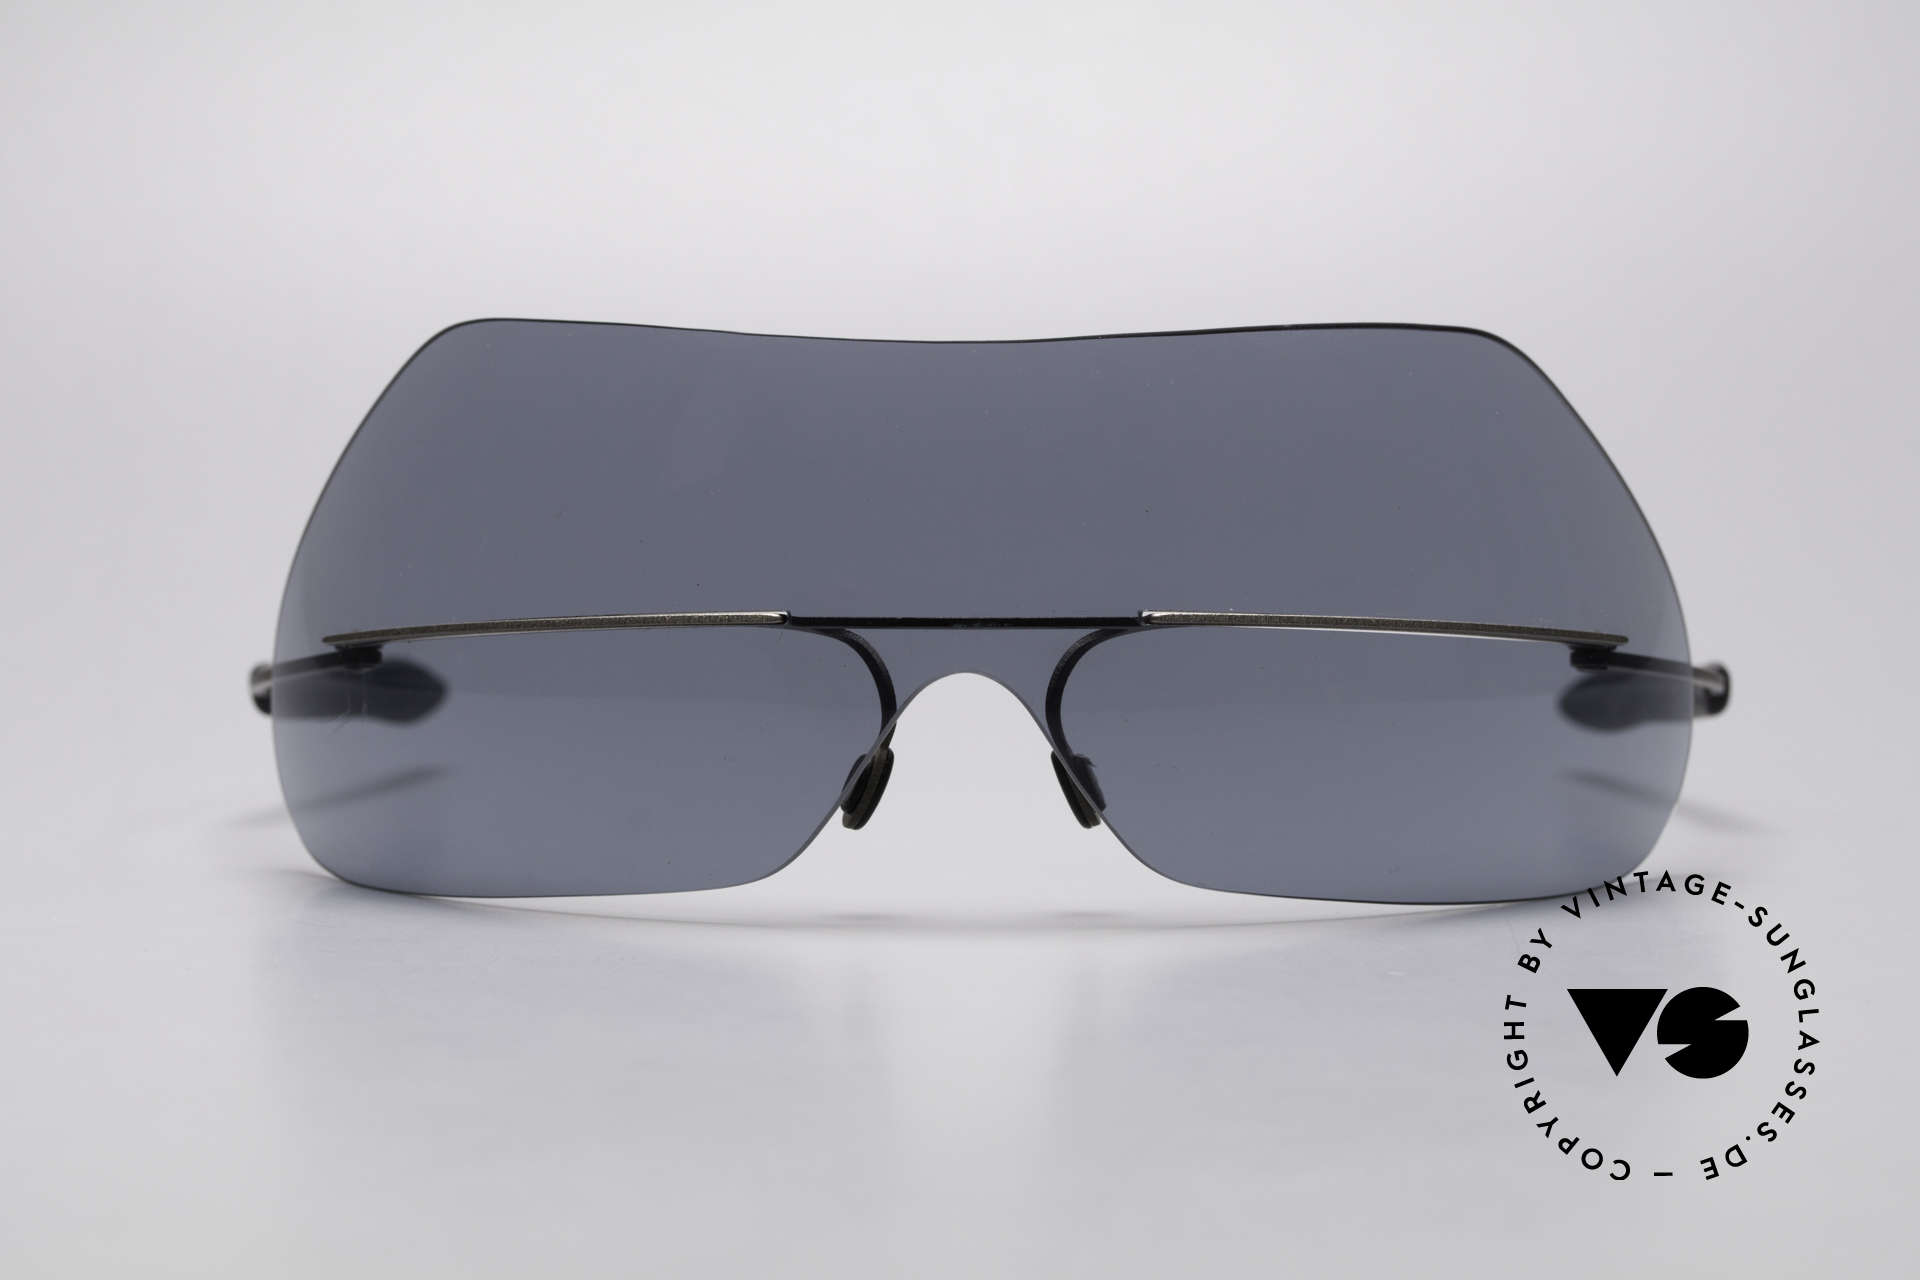 Theo Belgium Satisfashion 138 Sunglasses With Eyebrows, the name says it all ;-) .. SATISFASHION; lovesome!, Made for Women